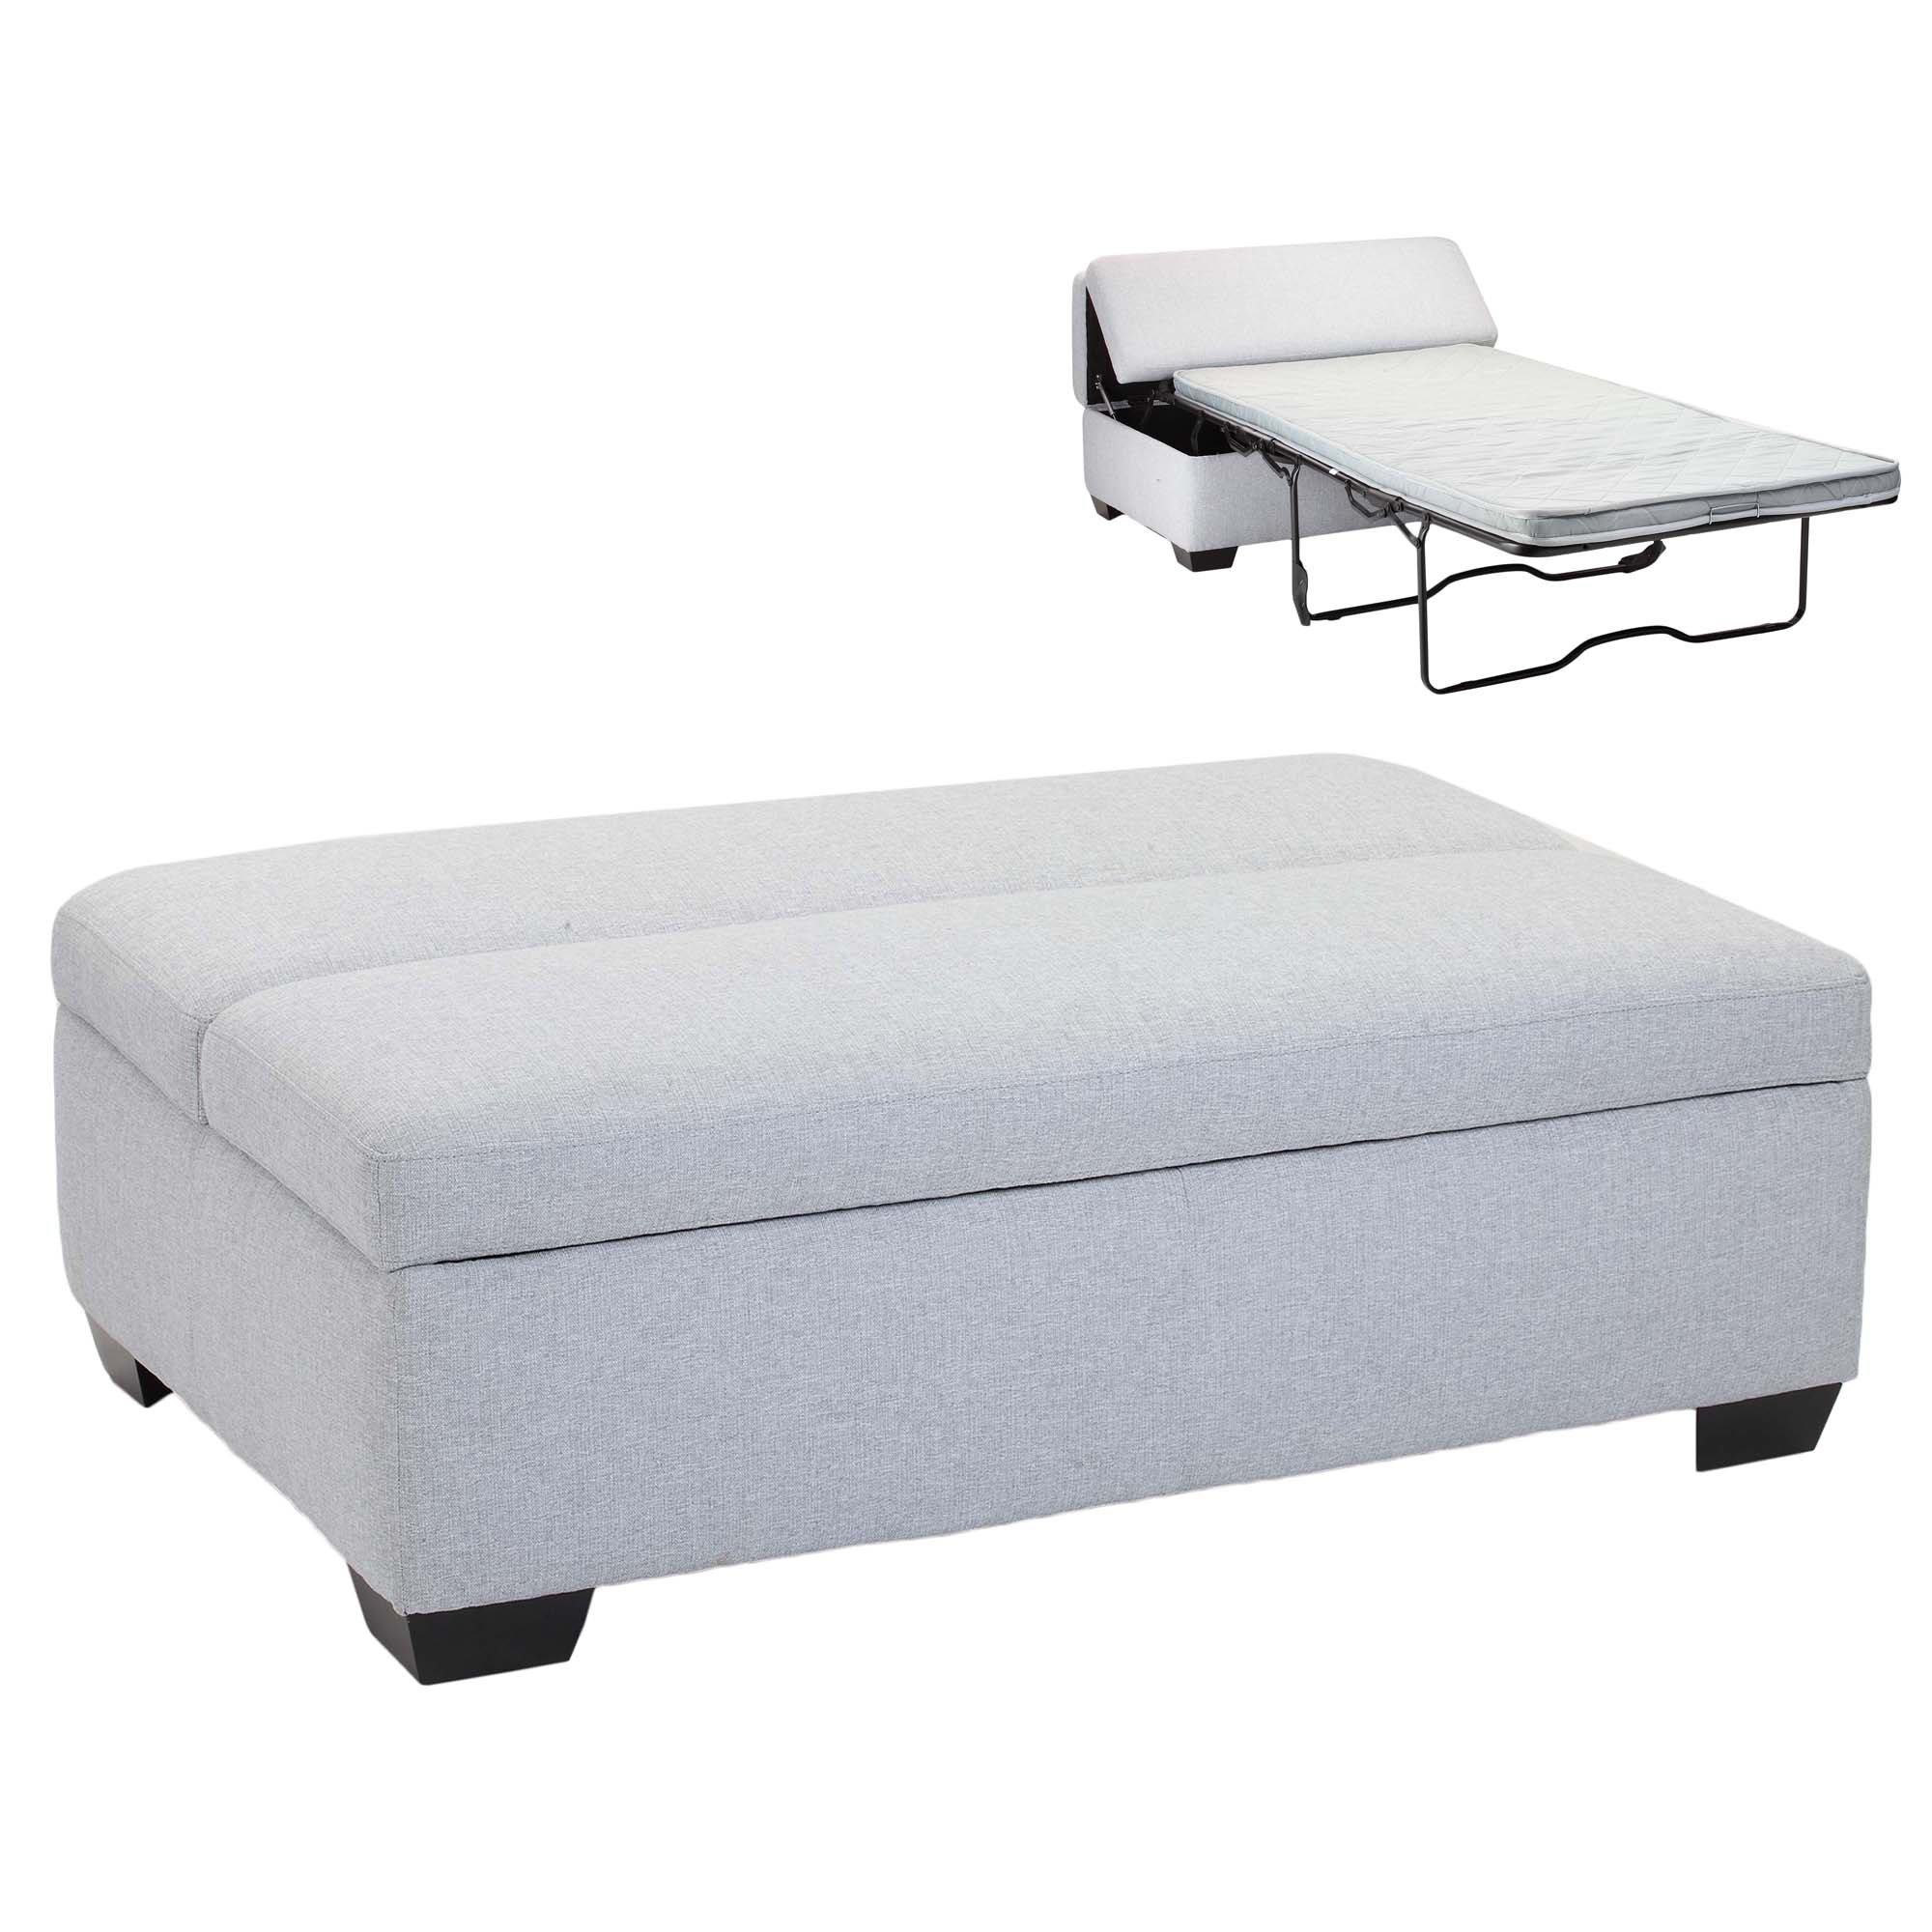 Picture of: Temple Webster Sleepy Convertible Ottoman Sofa Bed Reviews